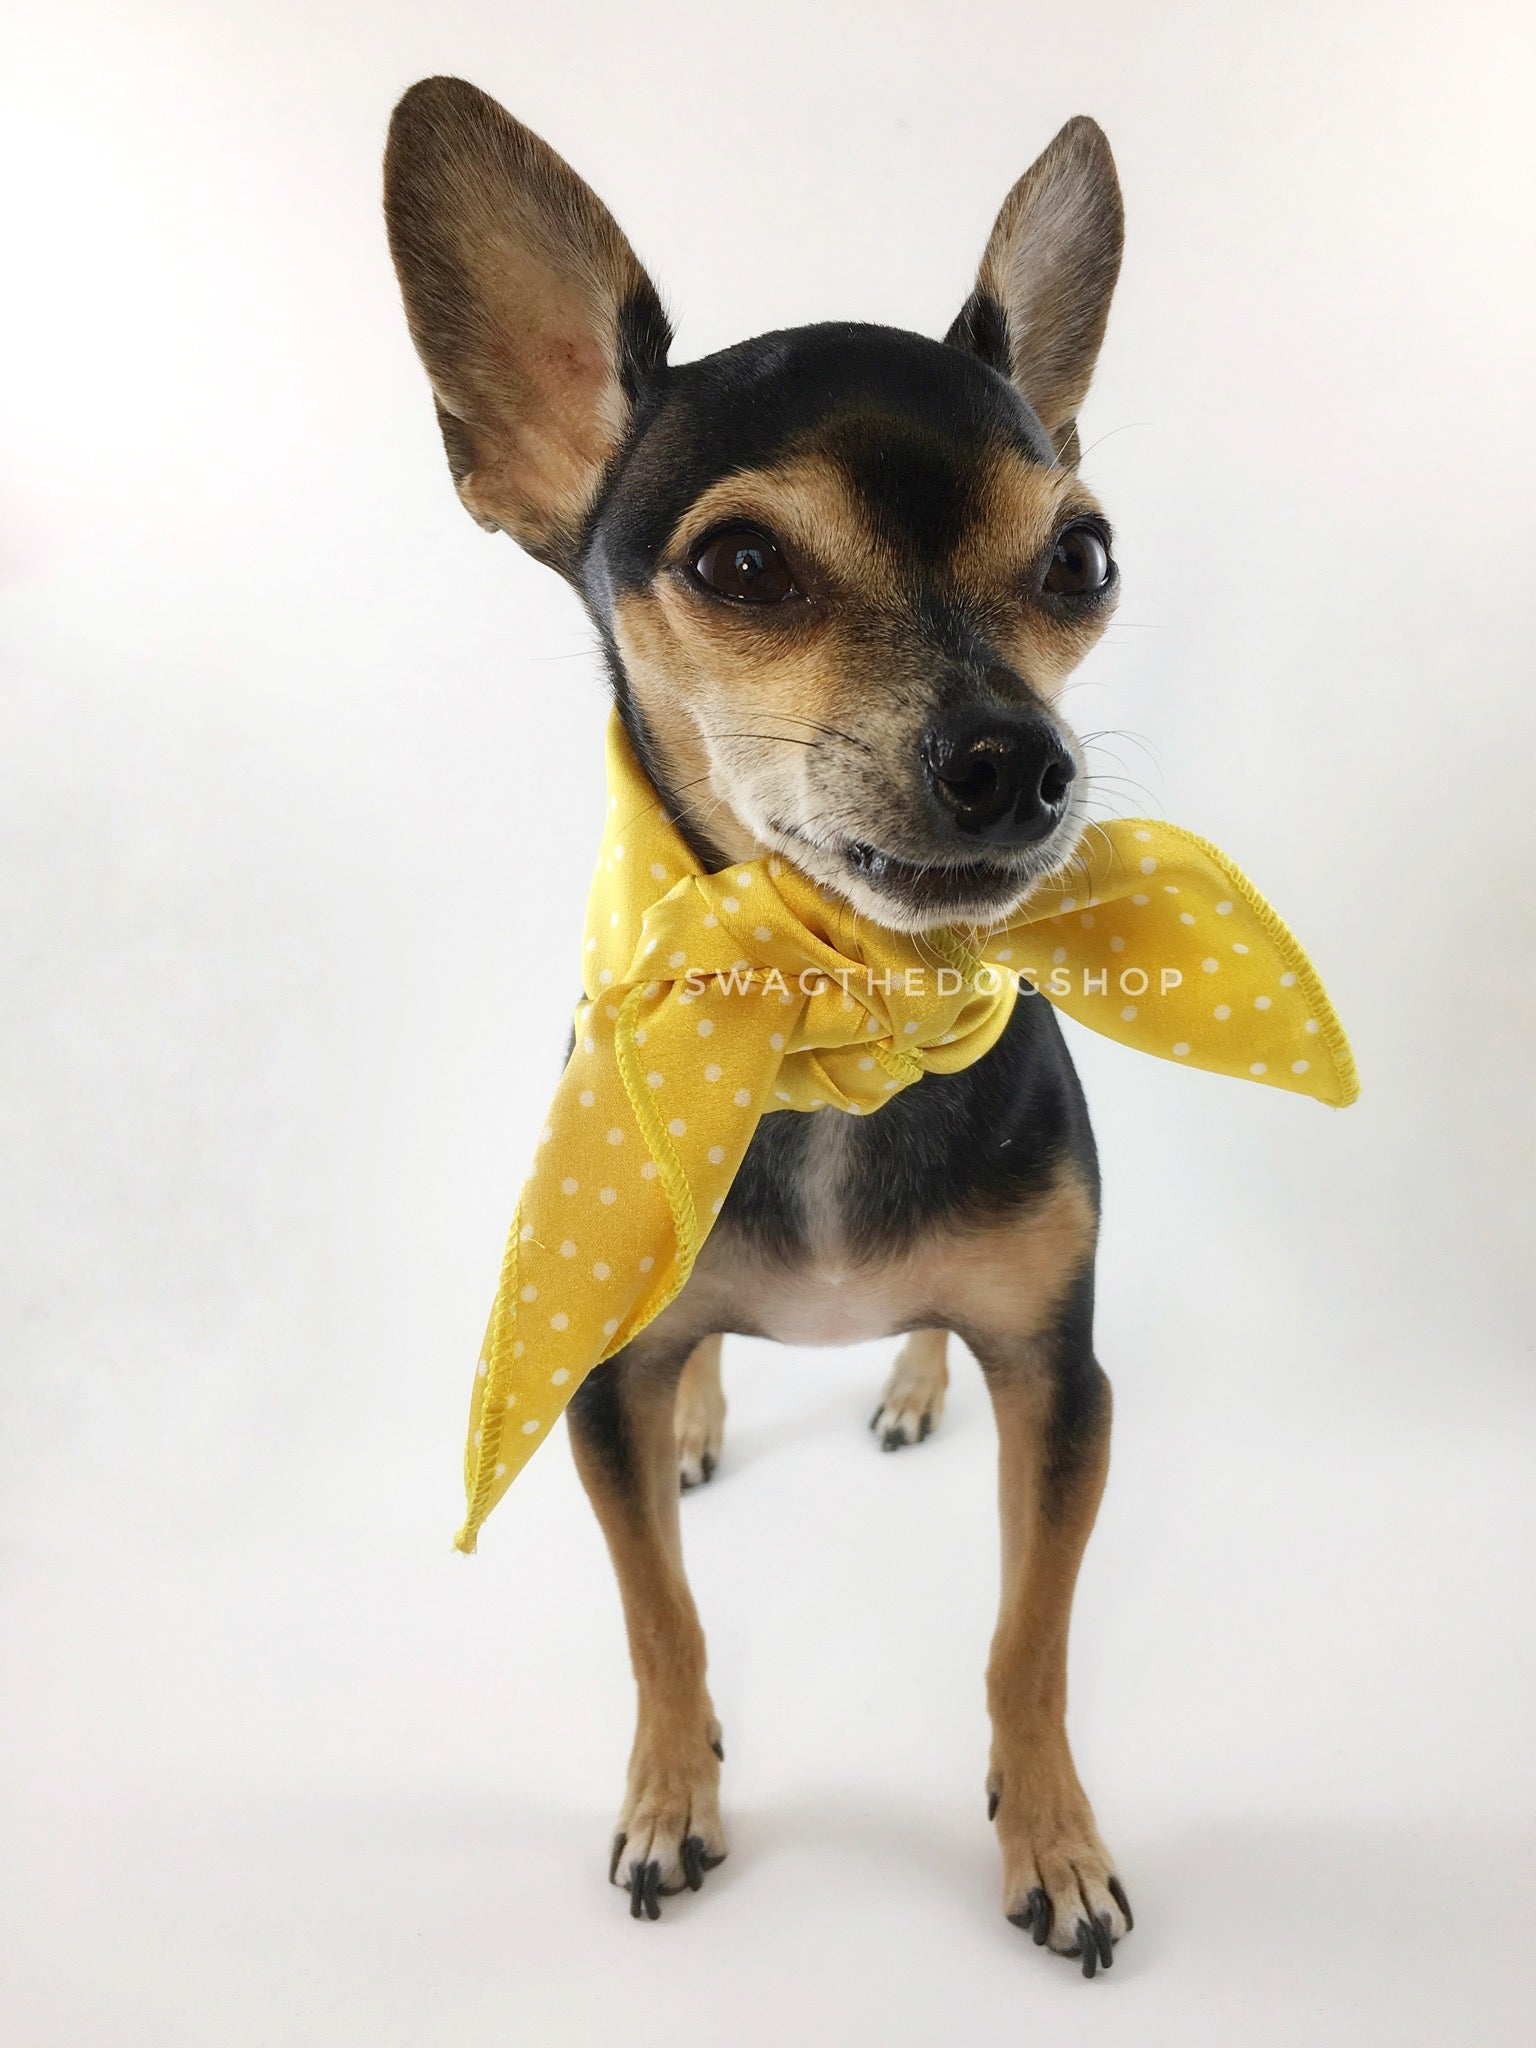 Polka Itty Bitty Sunny Yellow Swagdana Scarf - Full Frontal View of Cute Chihuahua Wearing Swagdana Scarf as Neck Scarf. Dog Bandana. Dog Scarf.